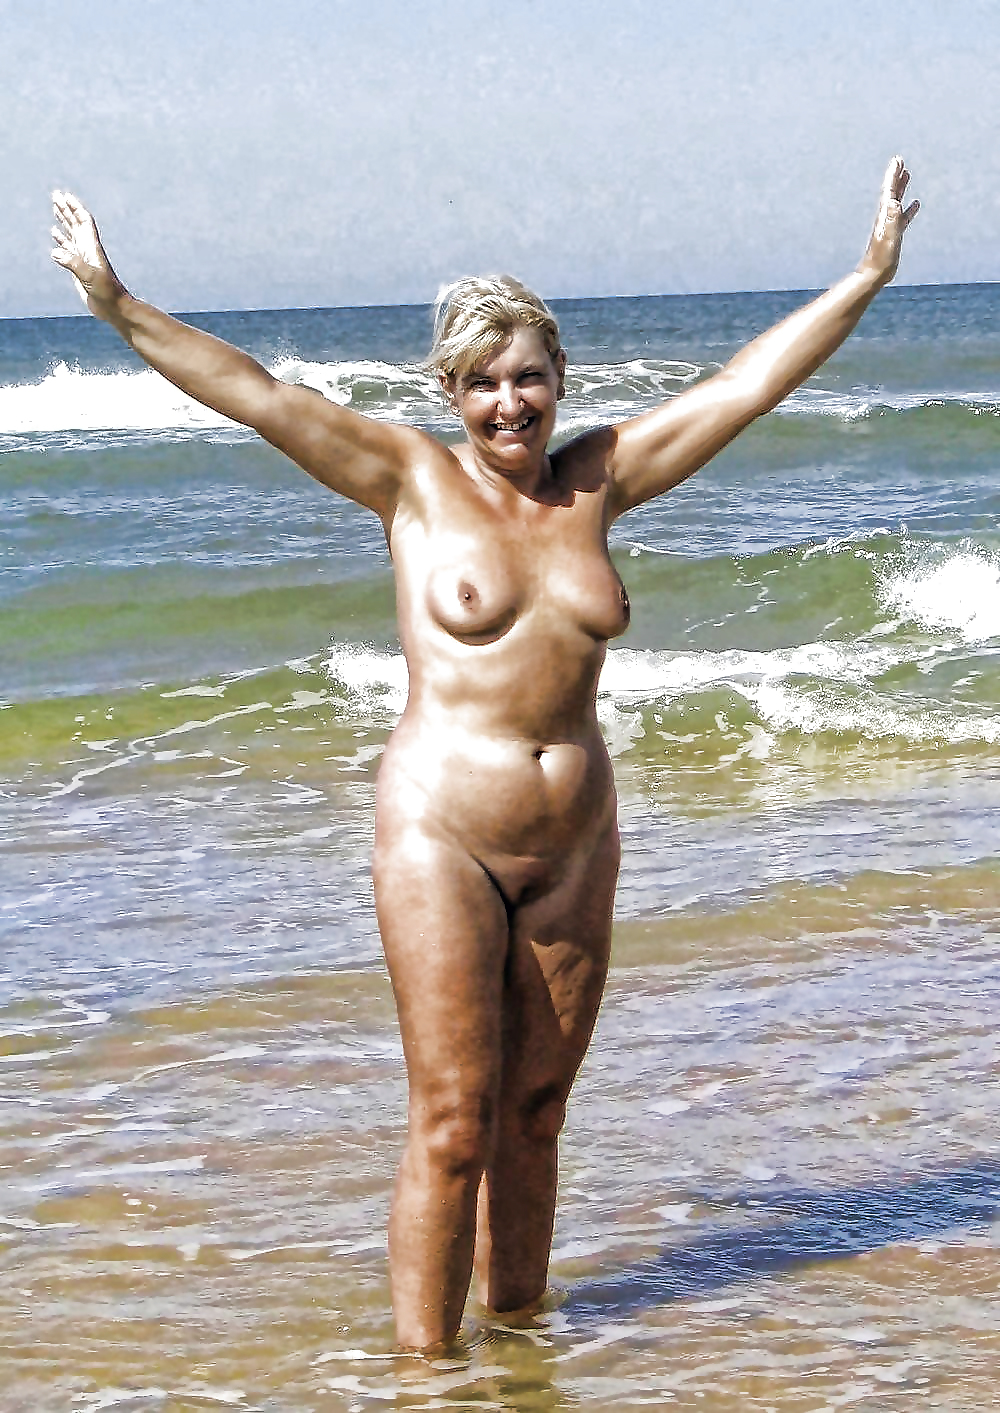 Beach fun naked-7847